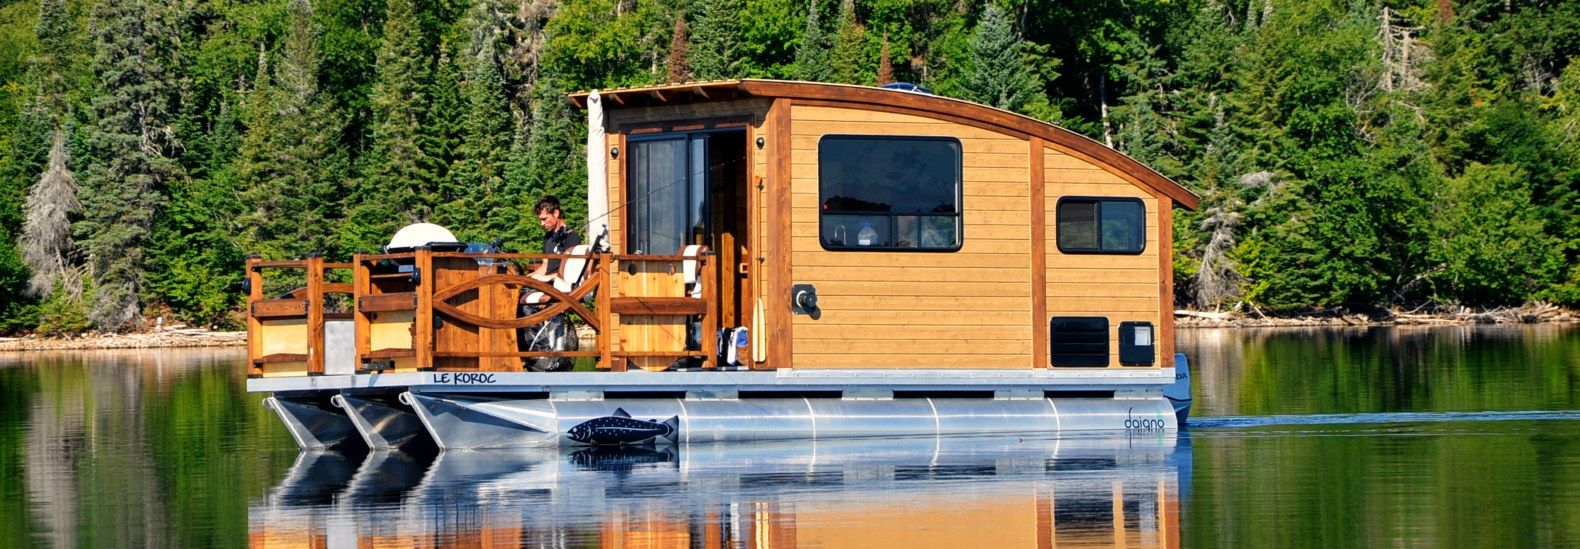 You Could Live In This Tiny Houseboat For $61,000